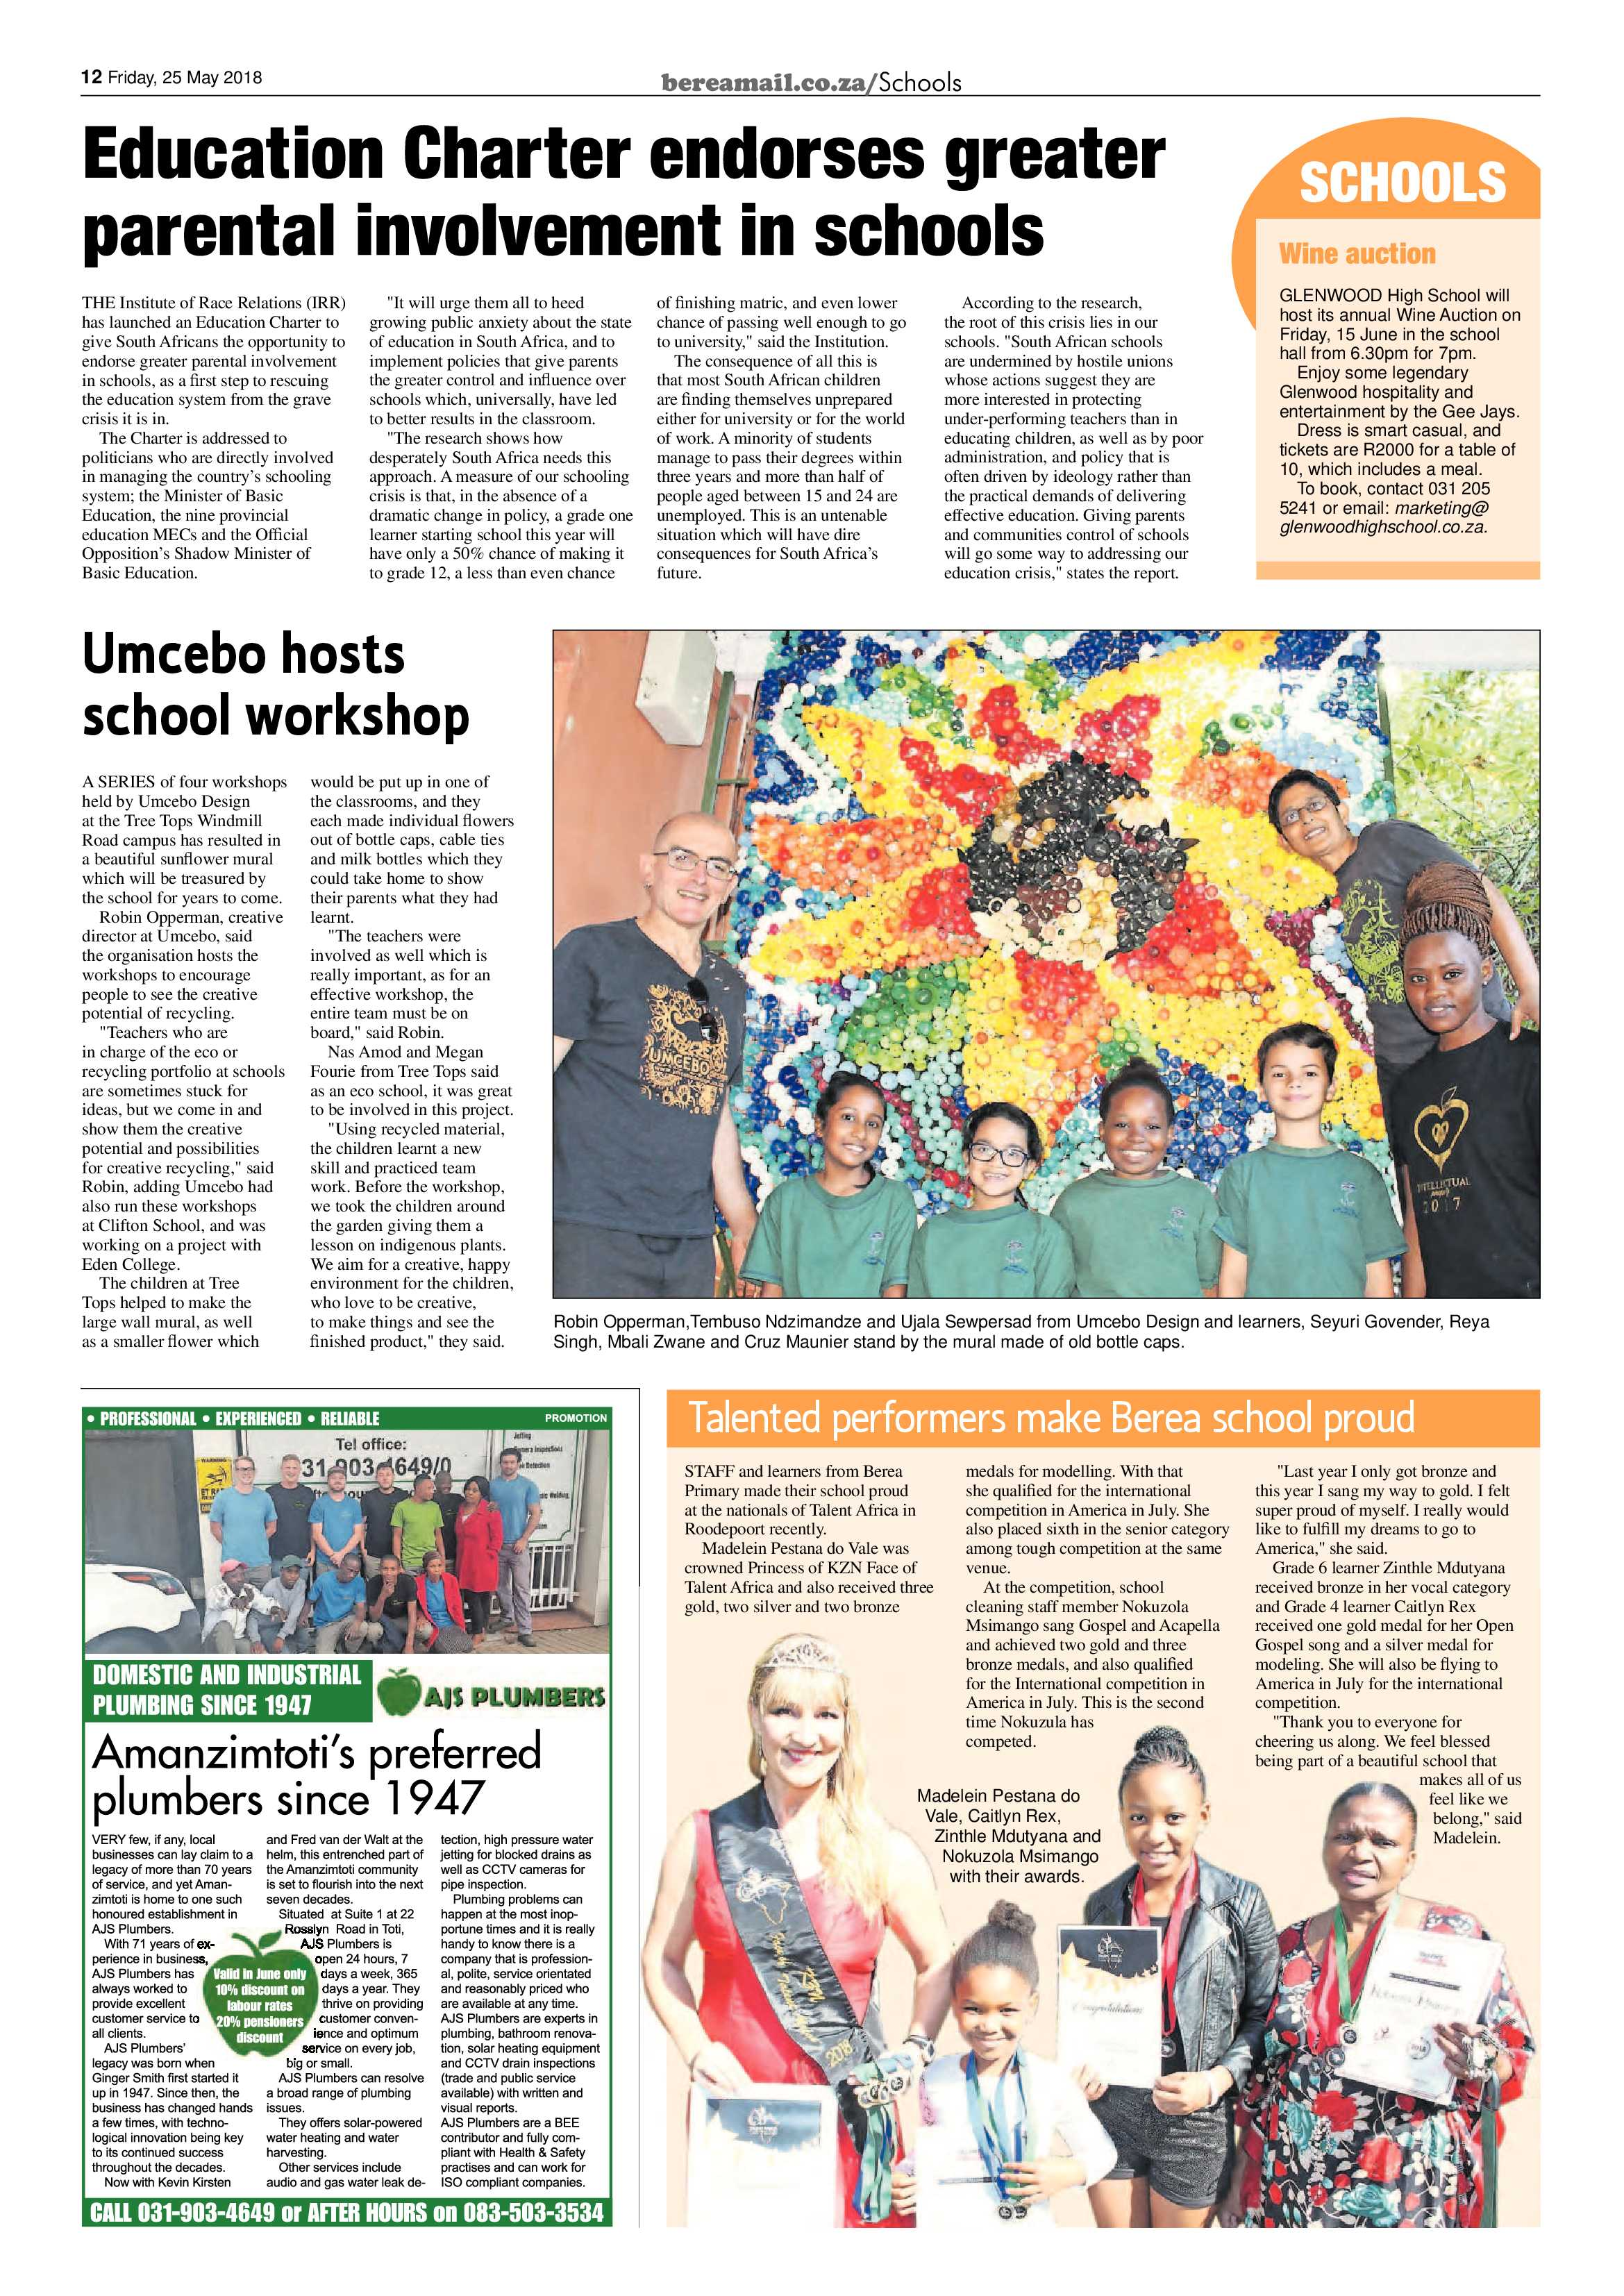 berea-mail-25-may-2018-epapers-page-12